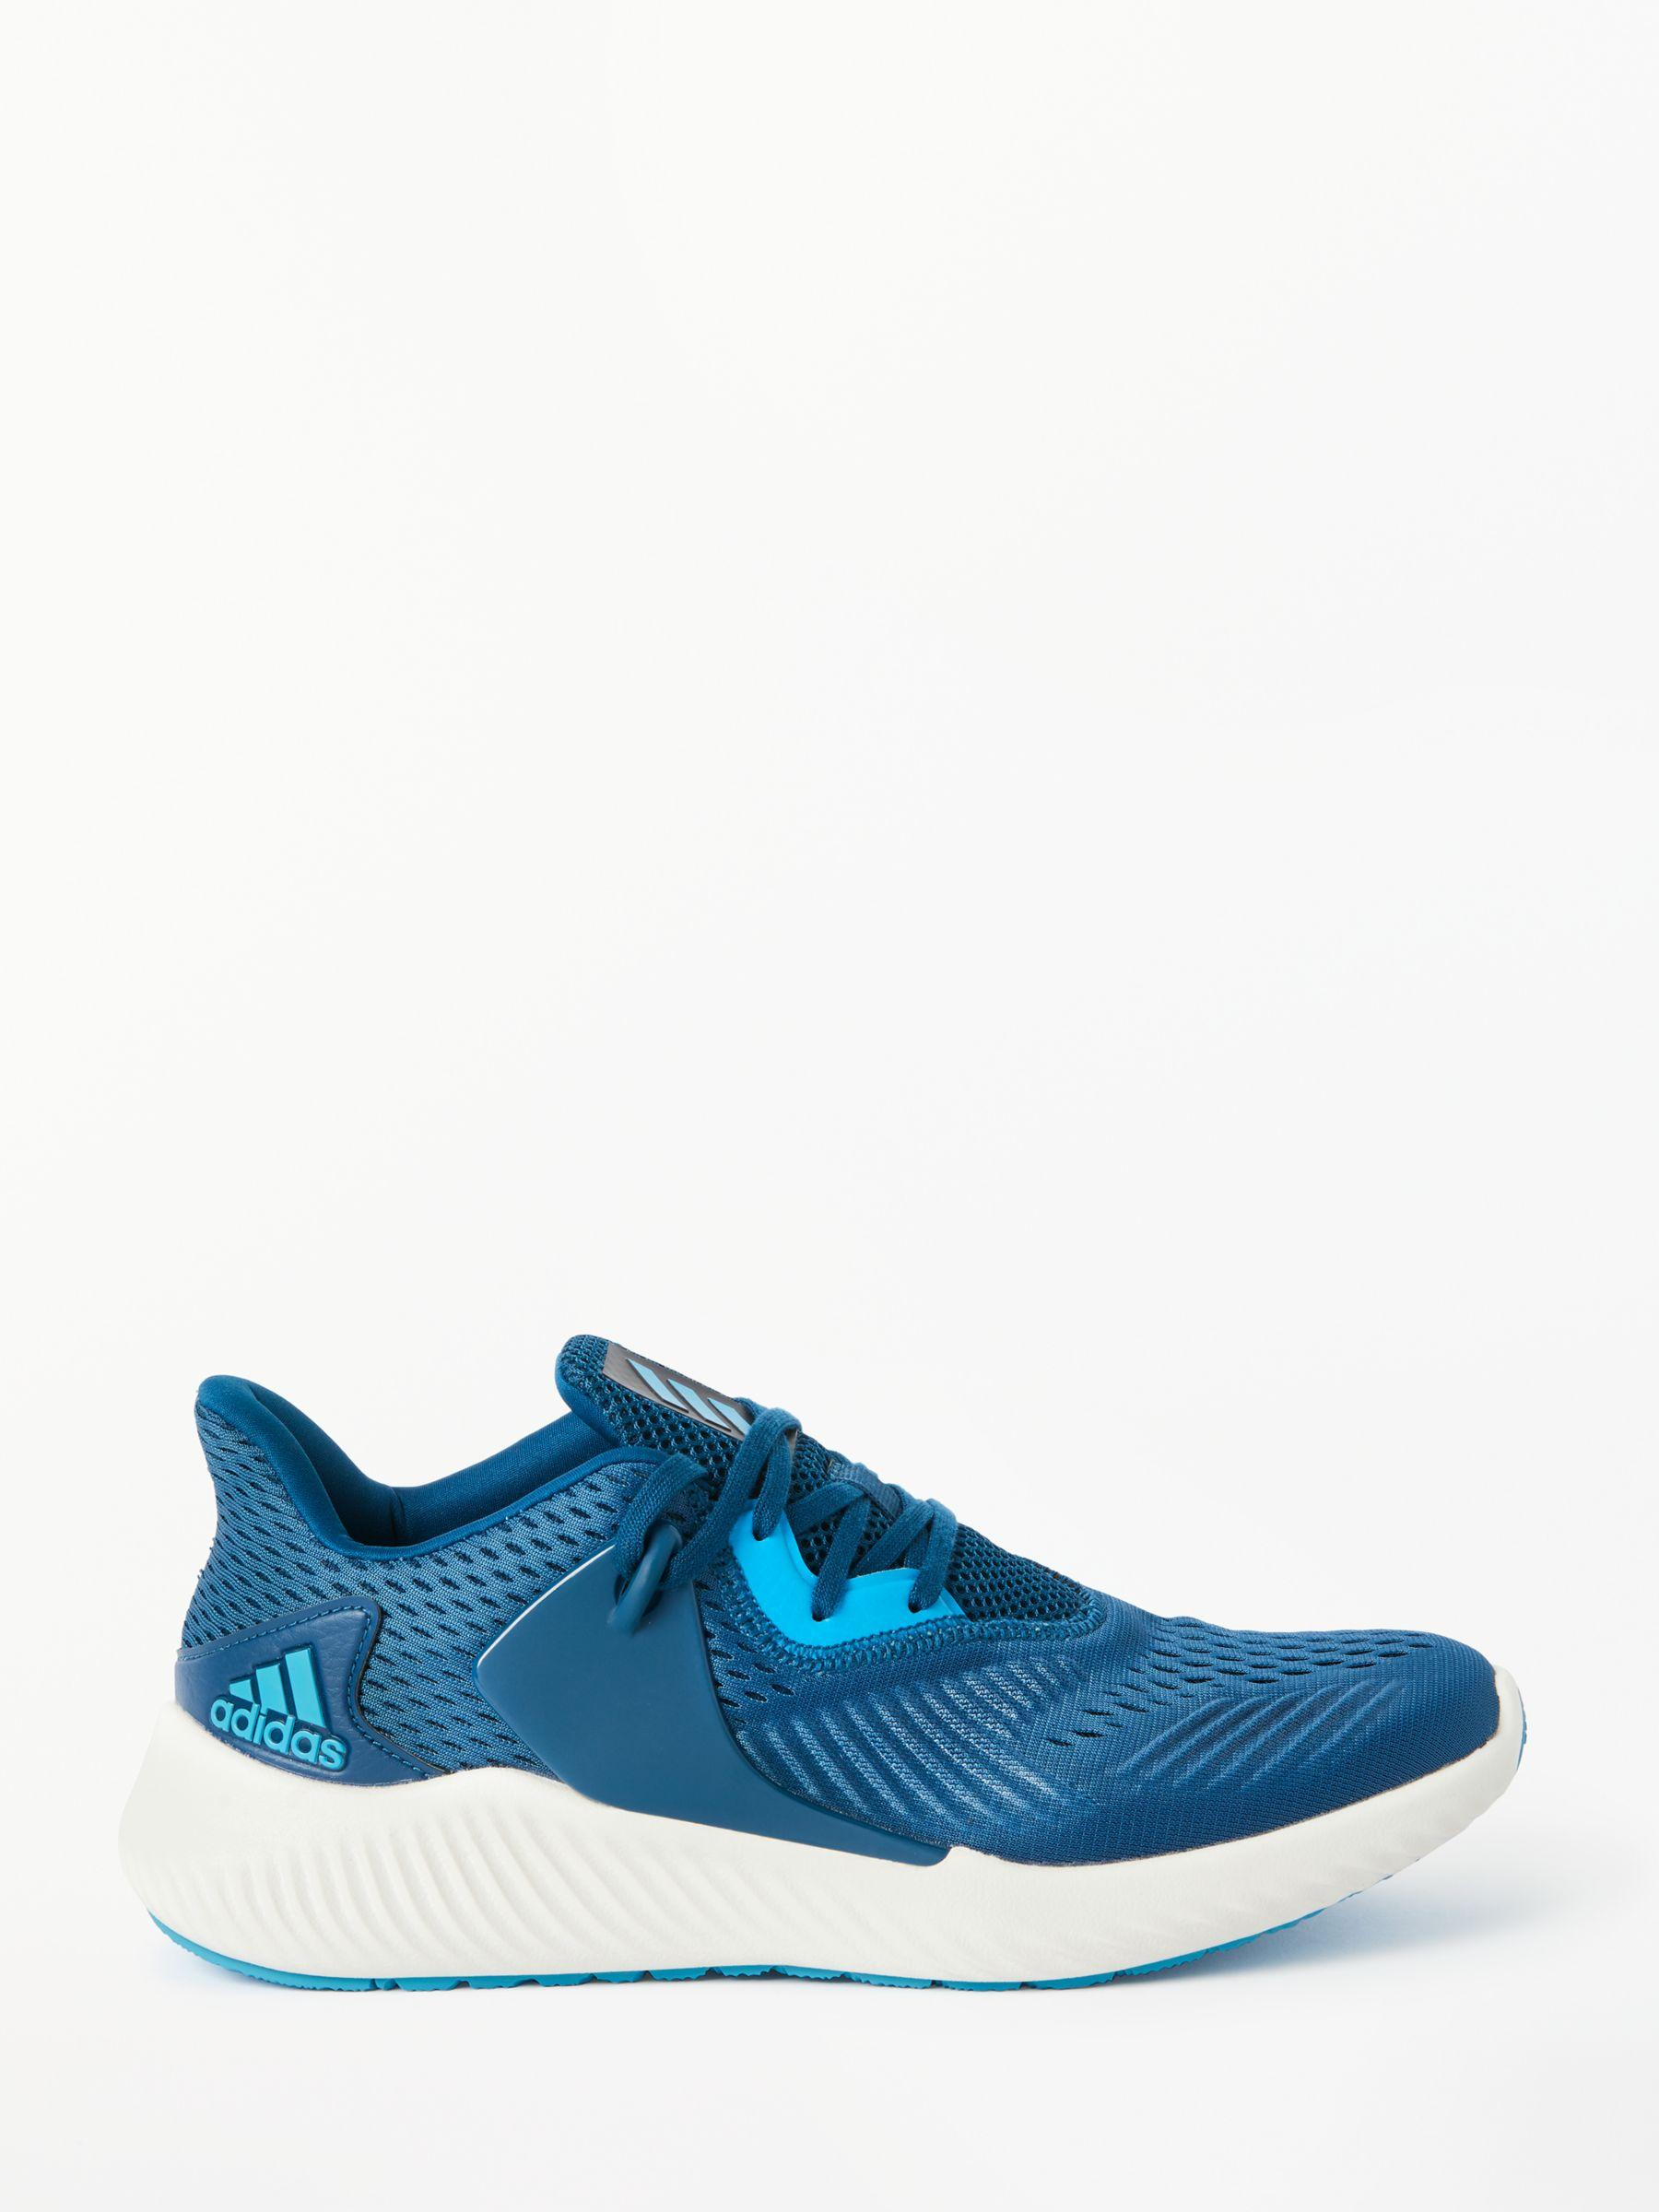 e3564f808b858 adidas Alphabounce Rc 2.0 Men s Running Shoes in Blue for Men - Lyst